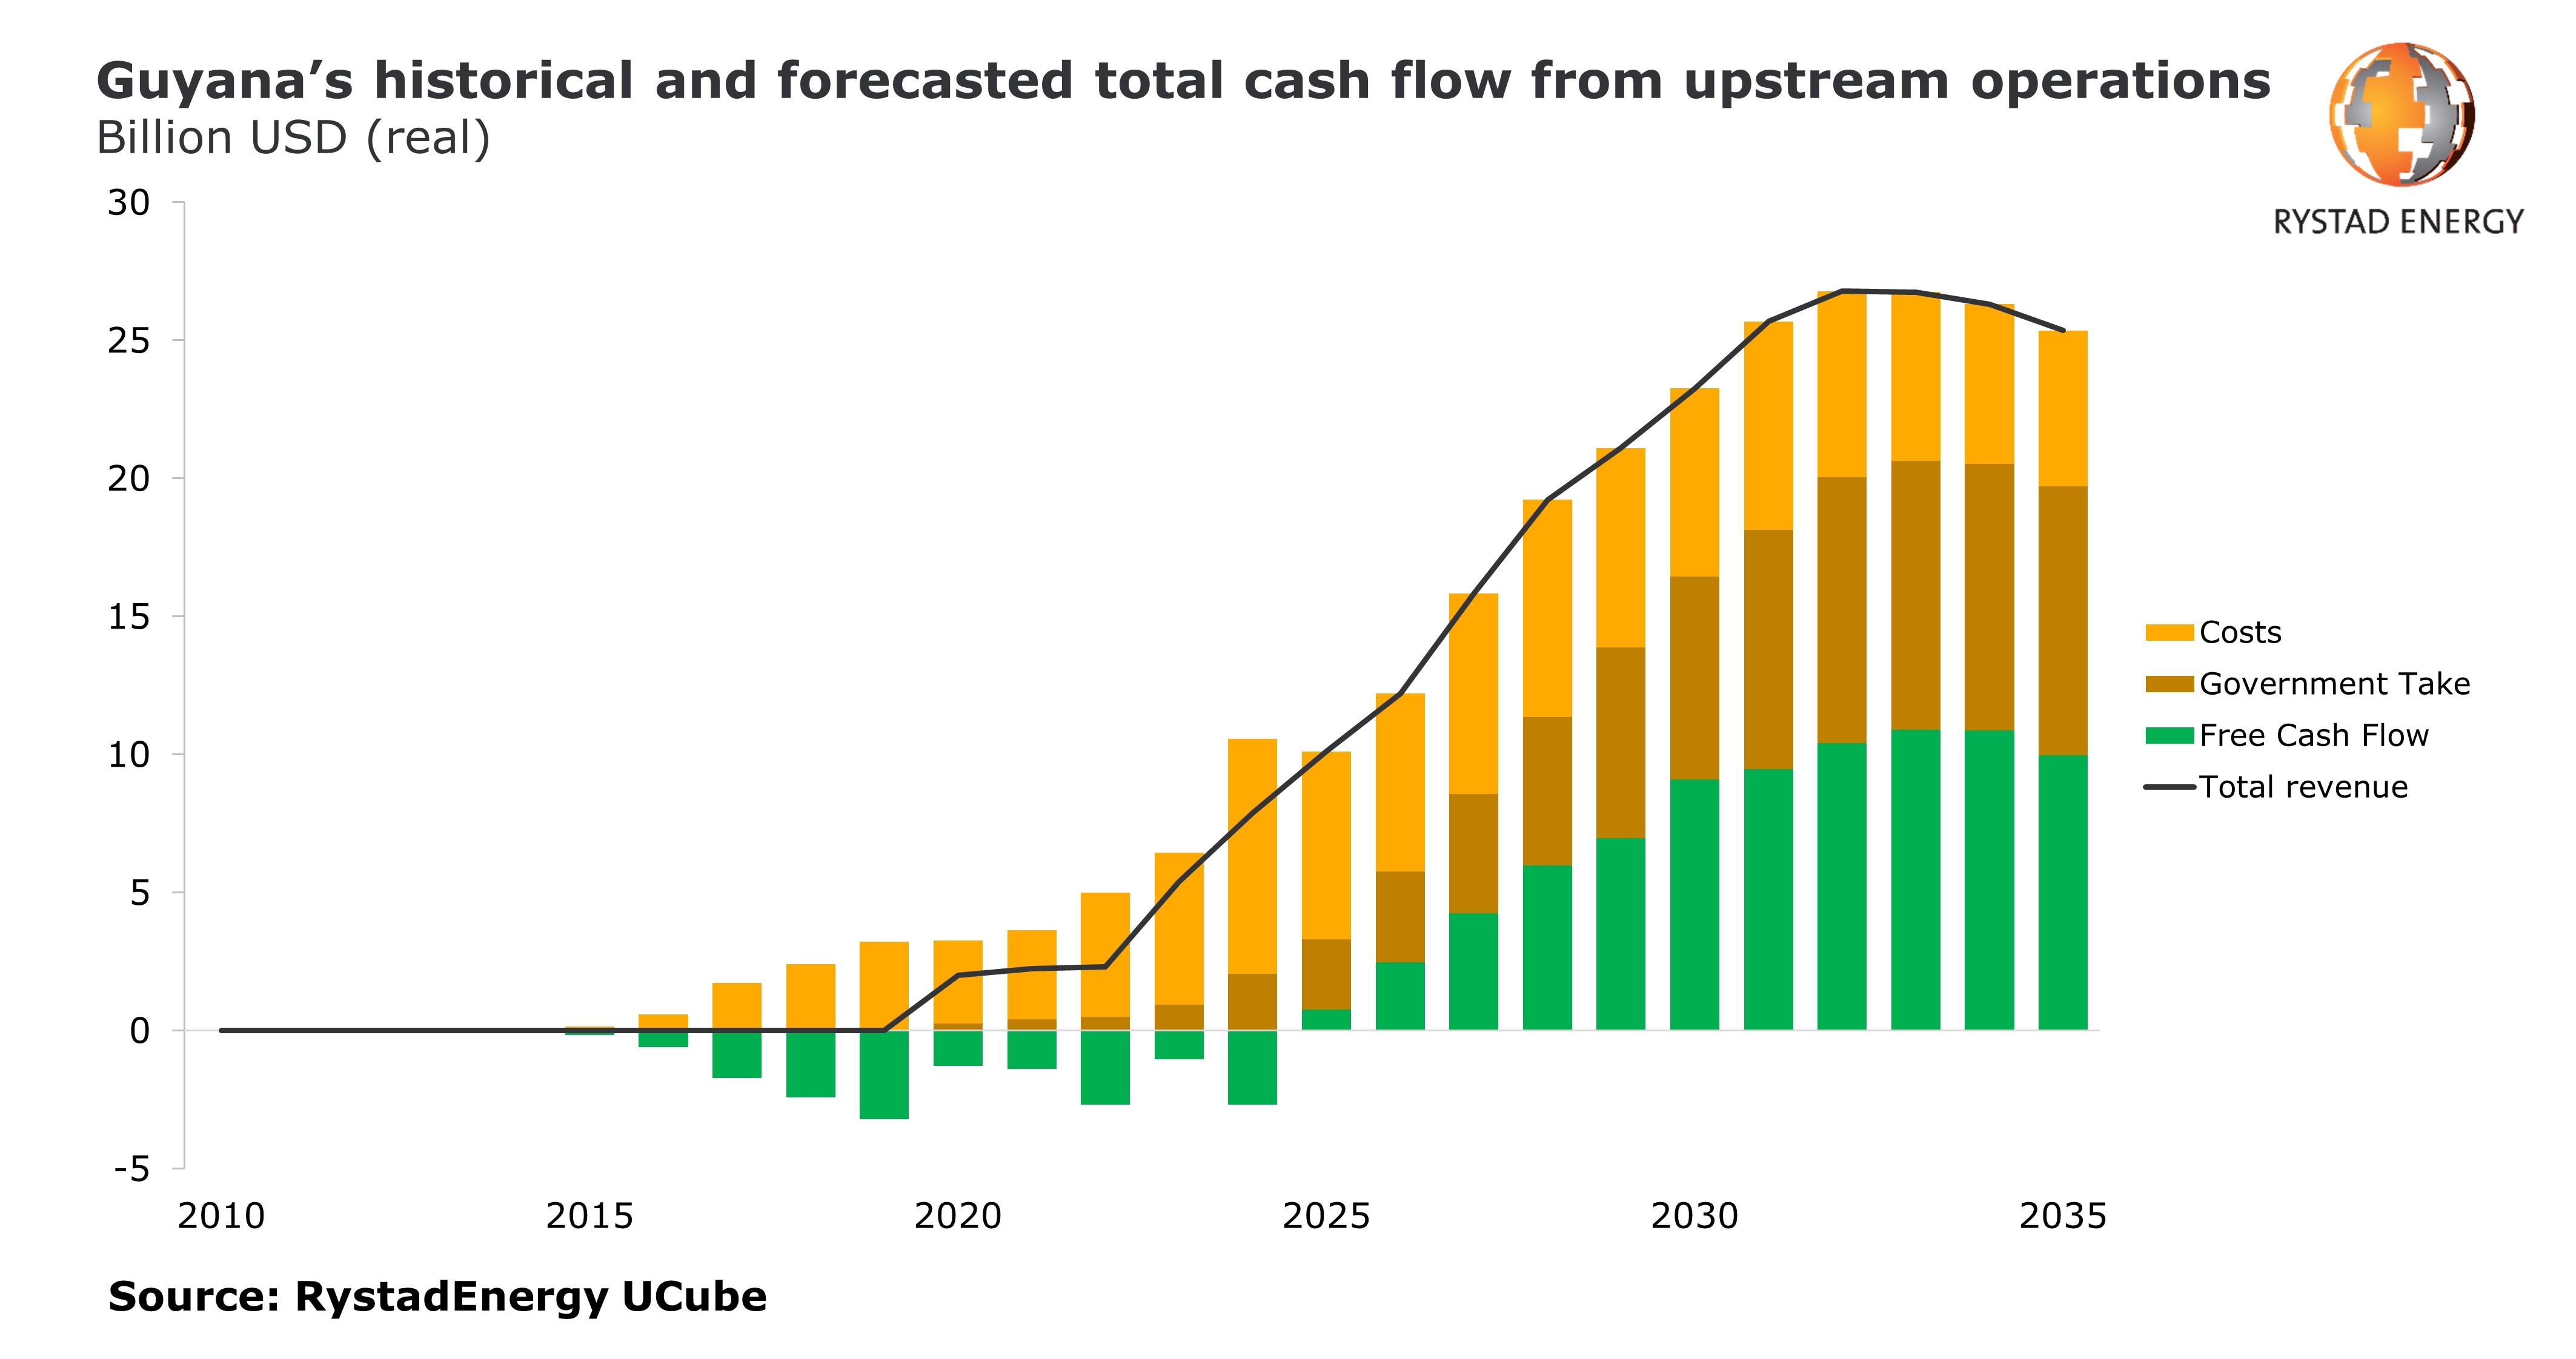 Chart showing Guyana's historical and forecasted total cash flow from upstream operations in billion USD